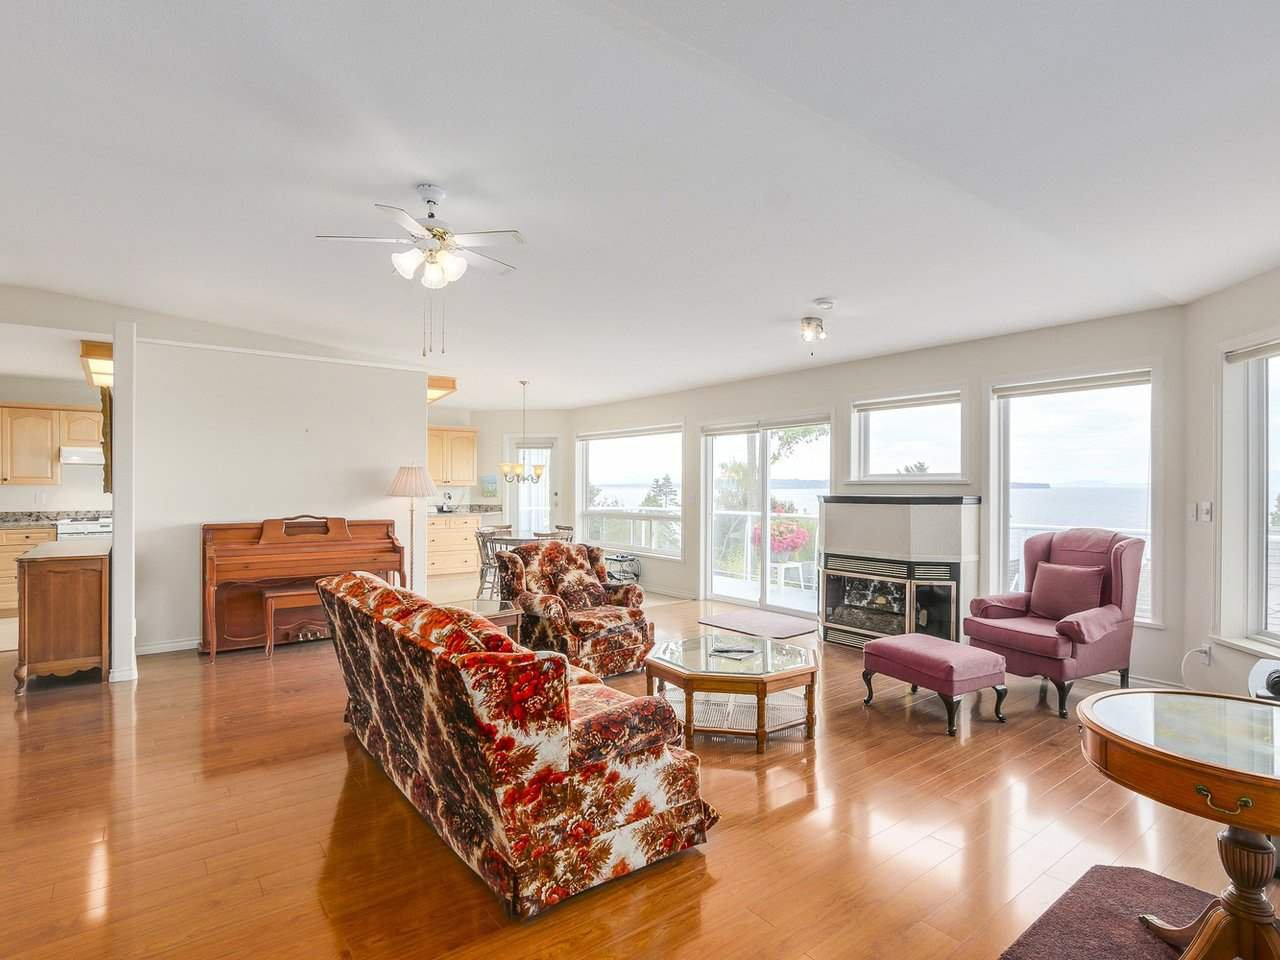 Photo 3: Photos: 1325 132B Street in Surrey: Crescent Bch Ocean Pk. House for sale (South Surrey White Rock)  : MLS®# R2185643